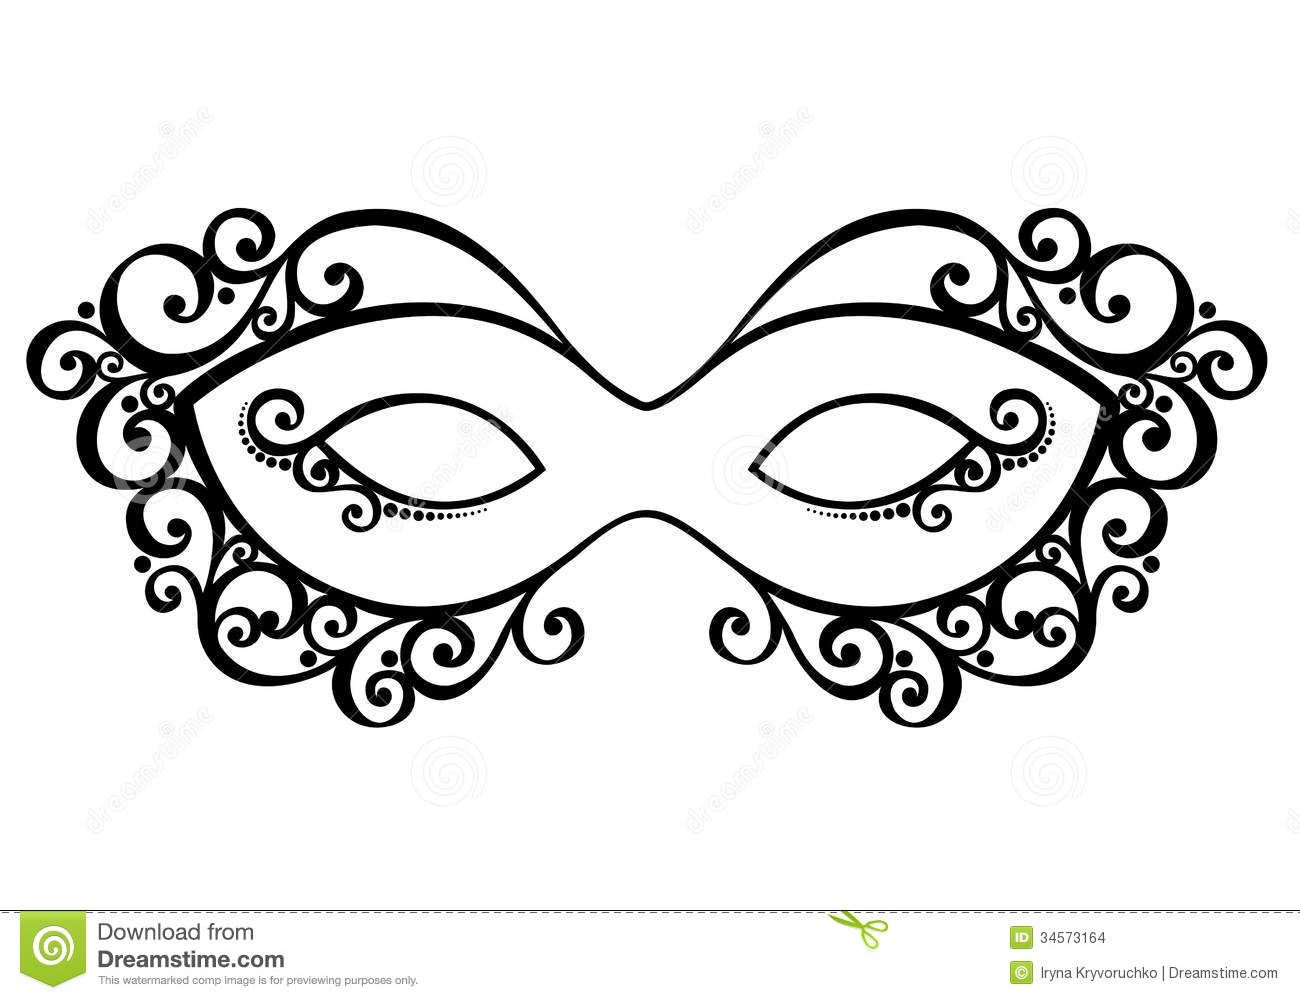 Printable Masquerade Mask Template | www.galleryhip.com - The Hippest ...